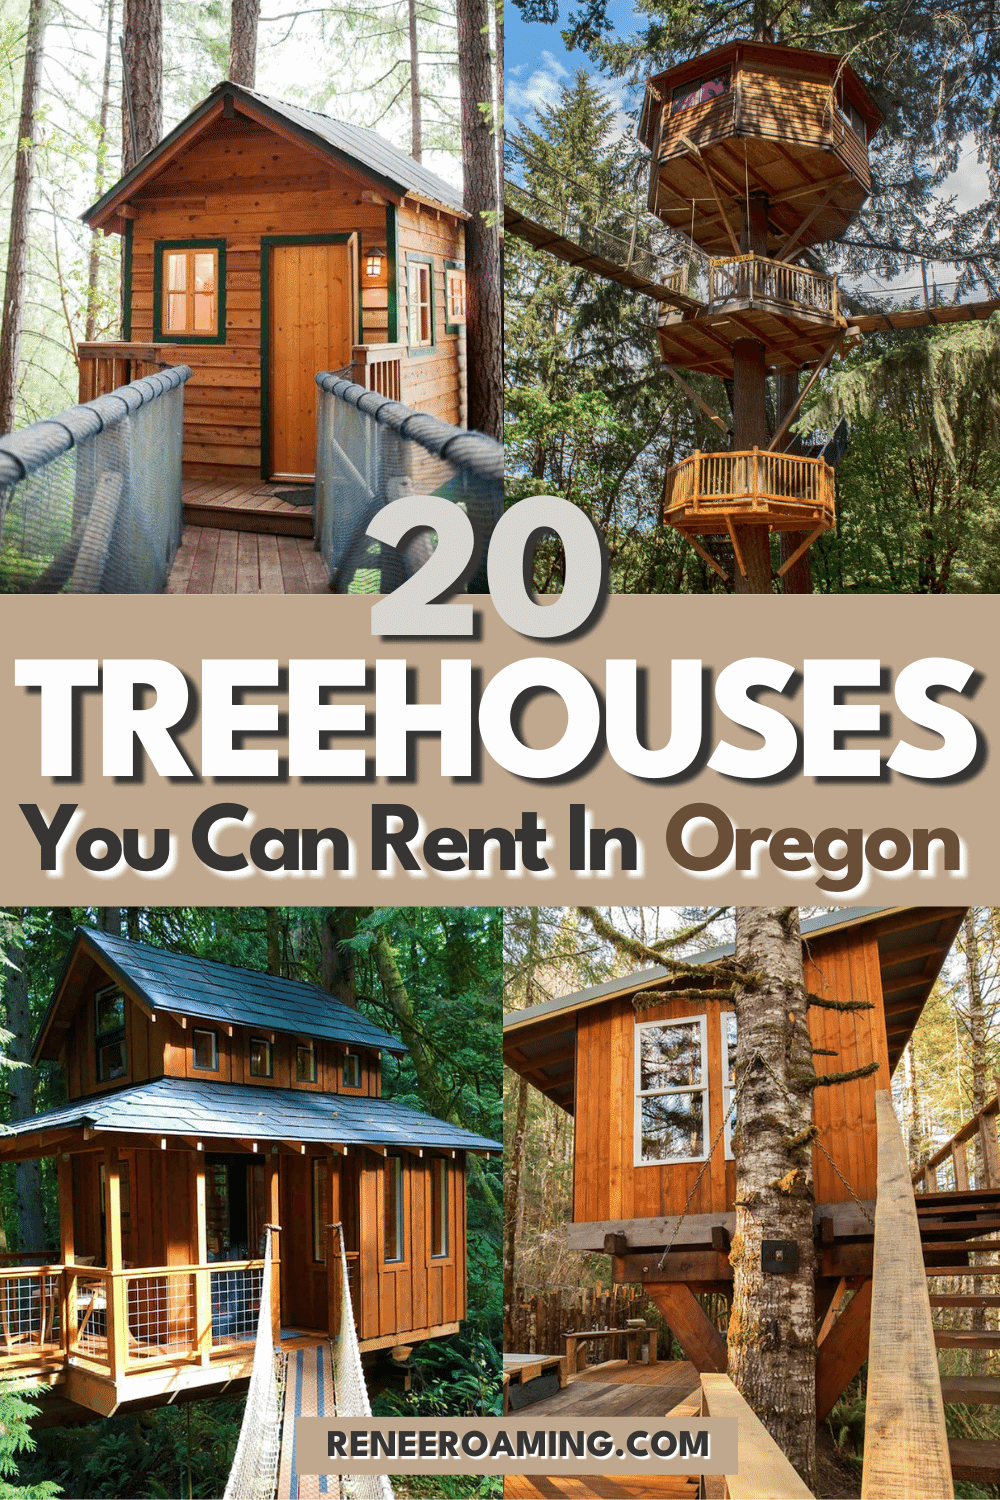 20 Magical Oregon Treehouses You Can Rent